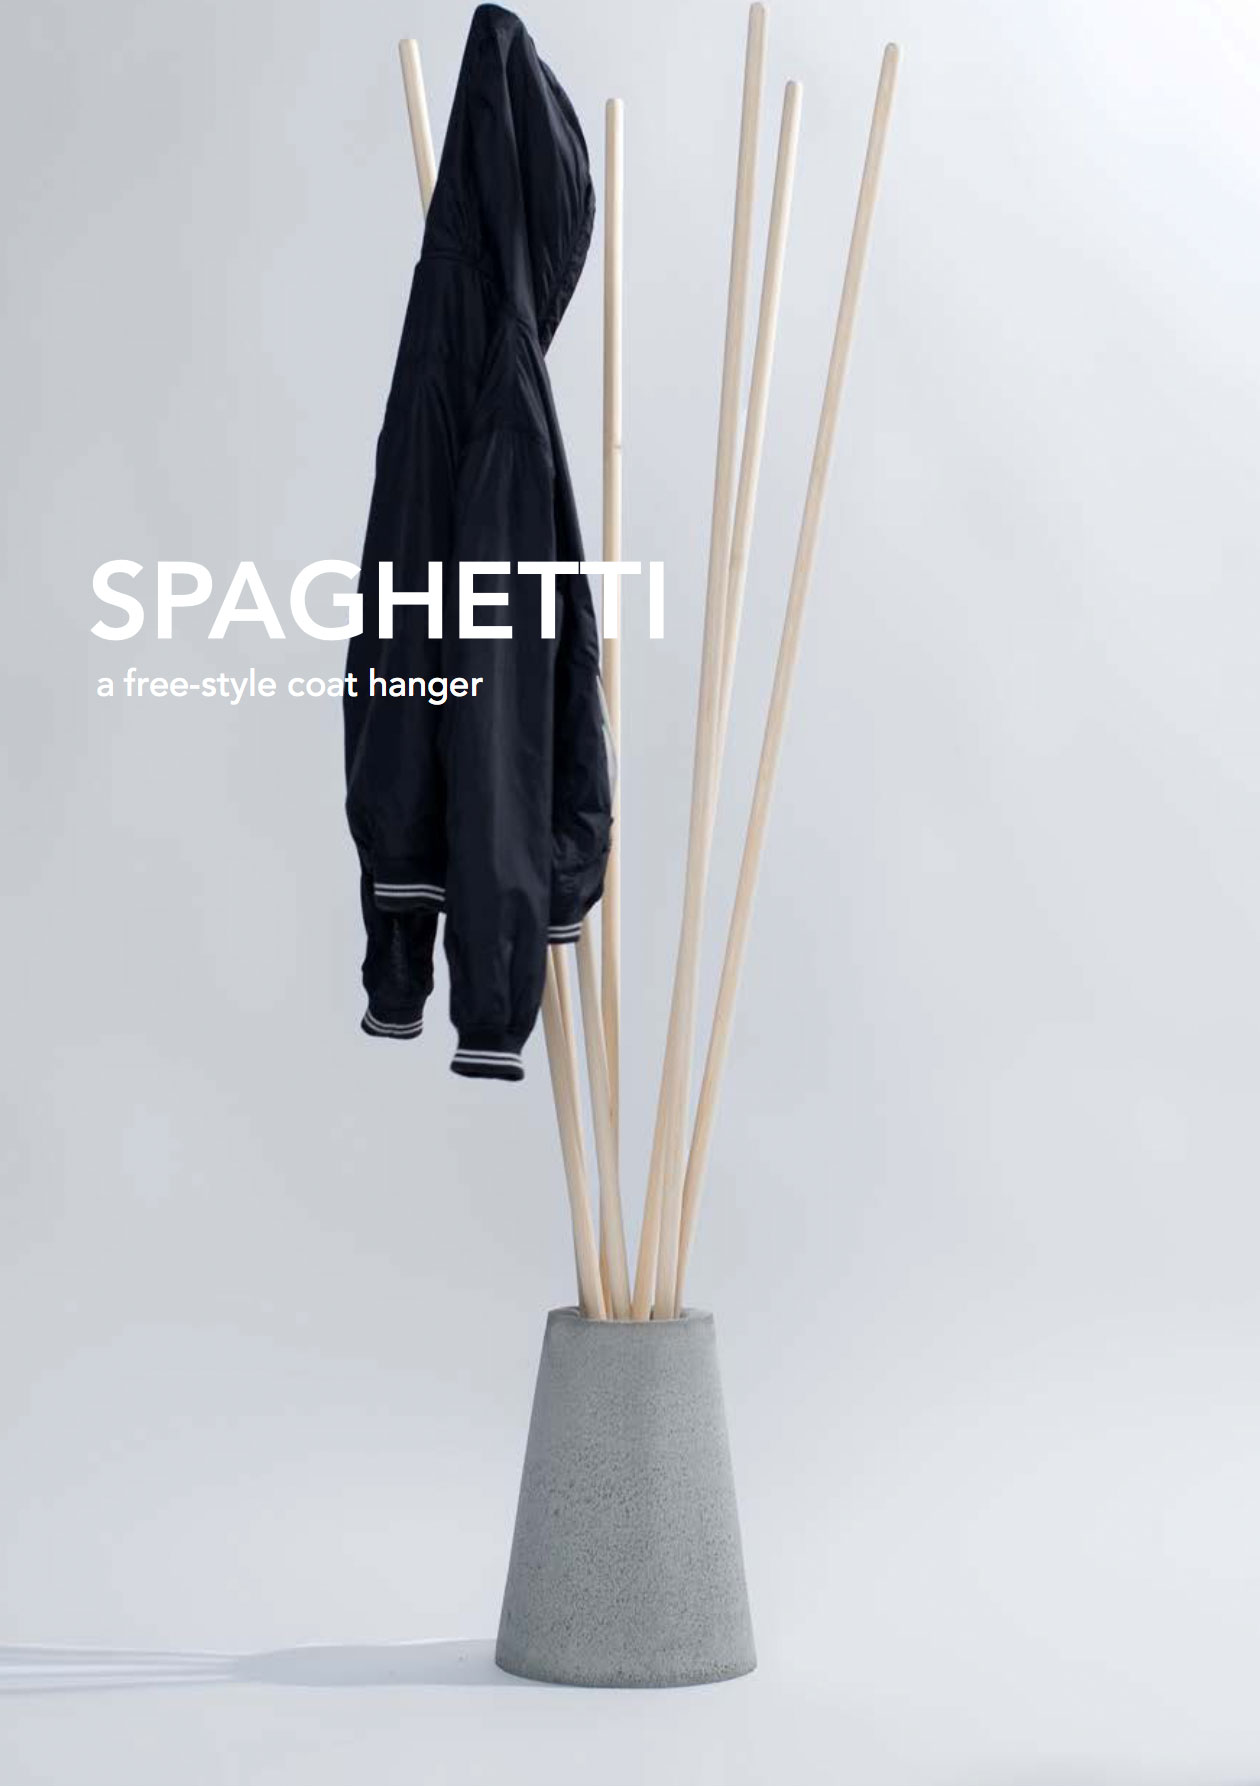 Spaghetti by Danzo is a freestyle coat hanger